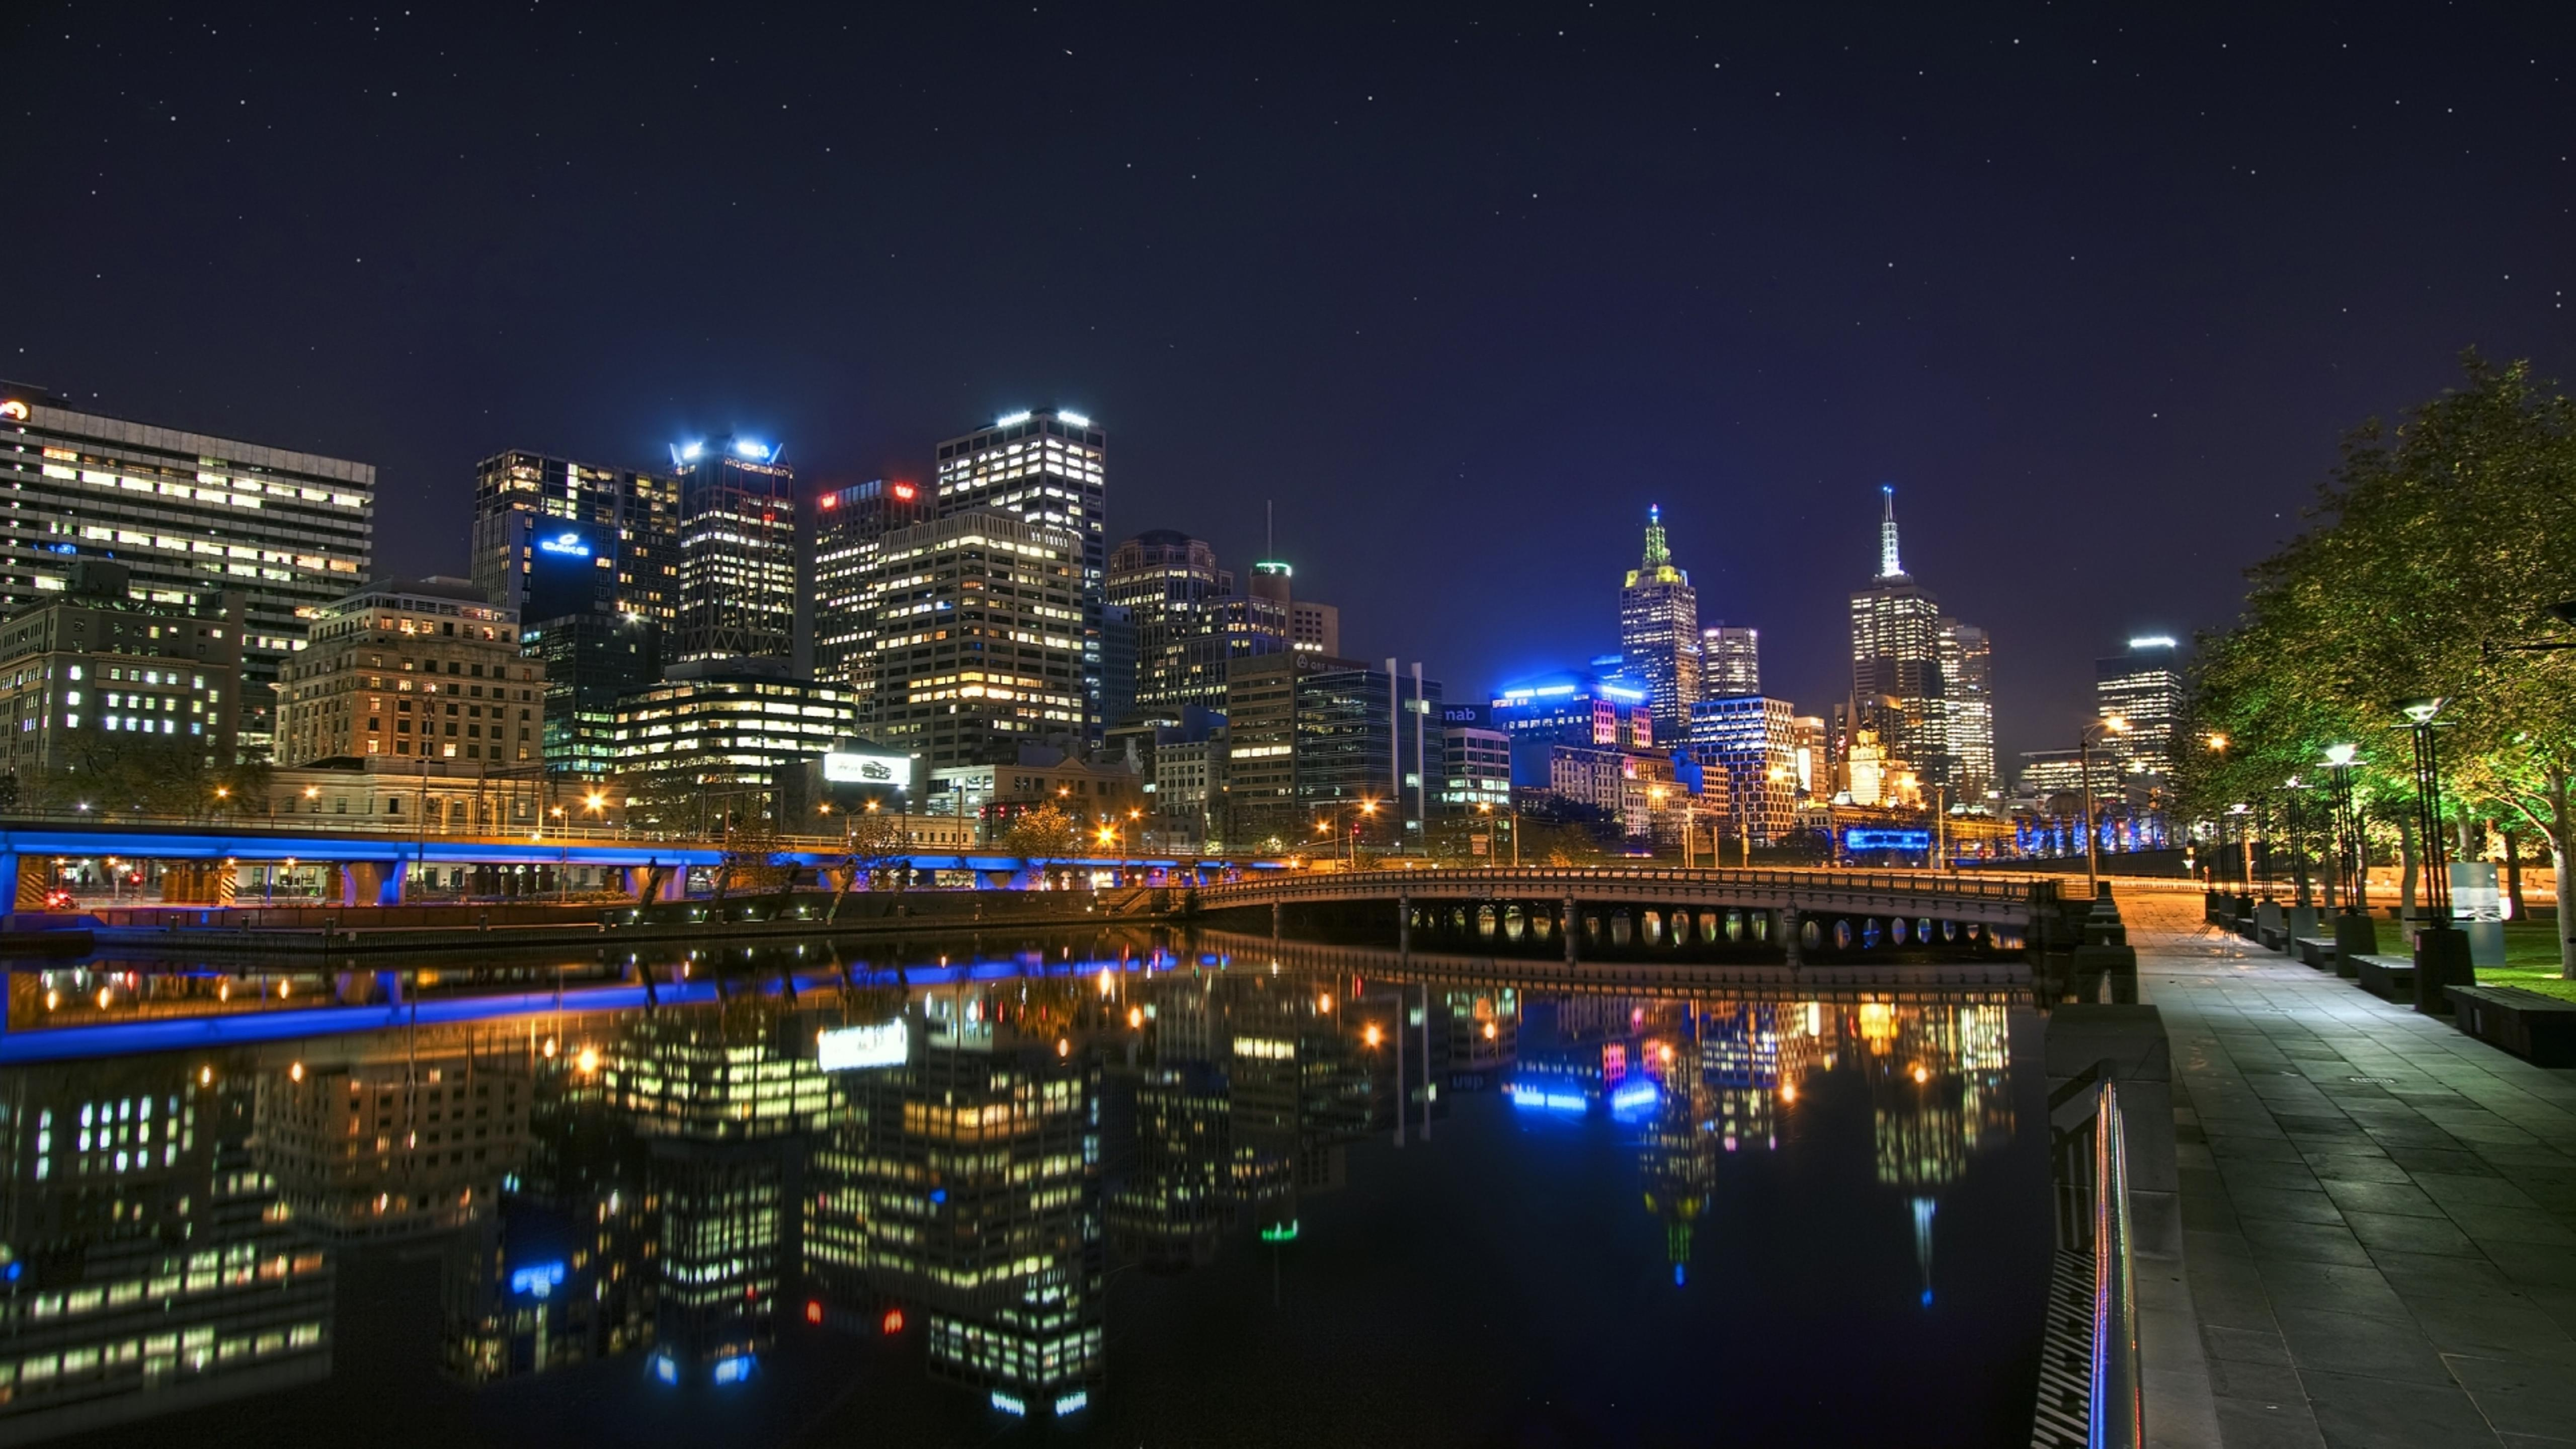 Melbourne City Lighted In Night Beautiful Landscape